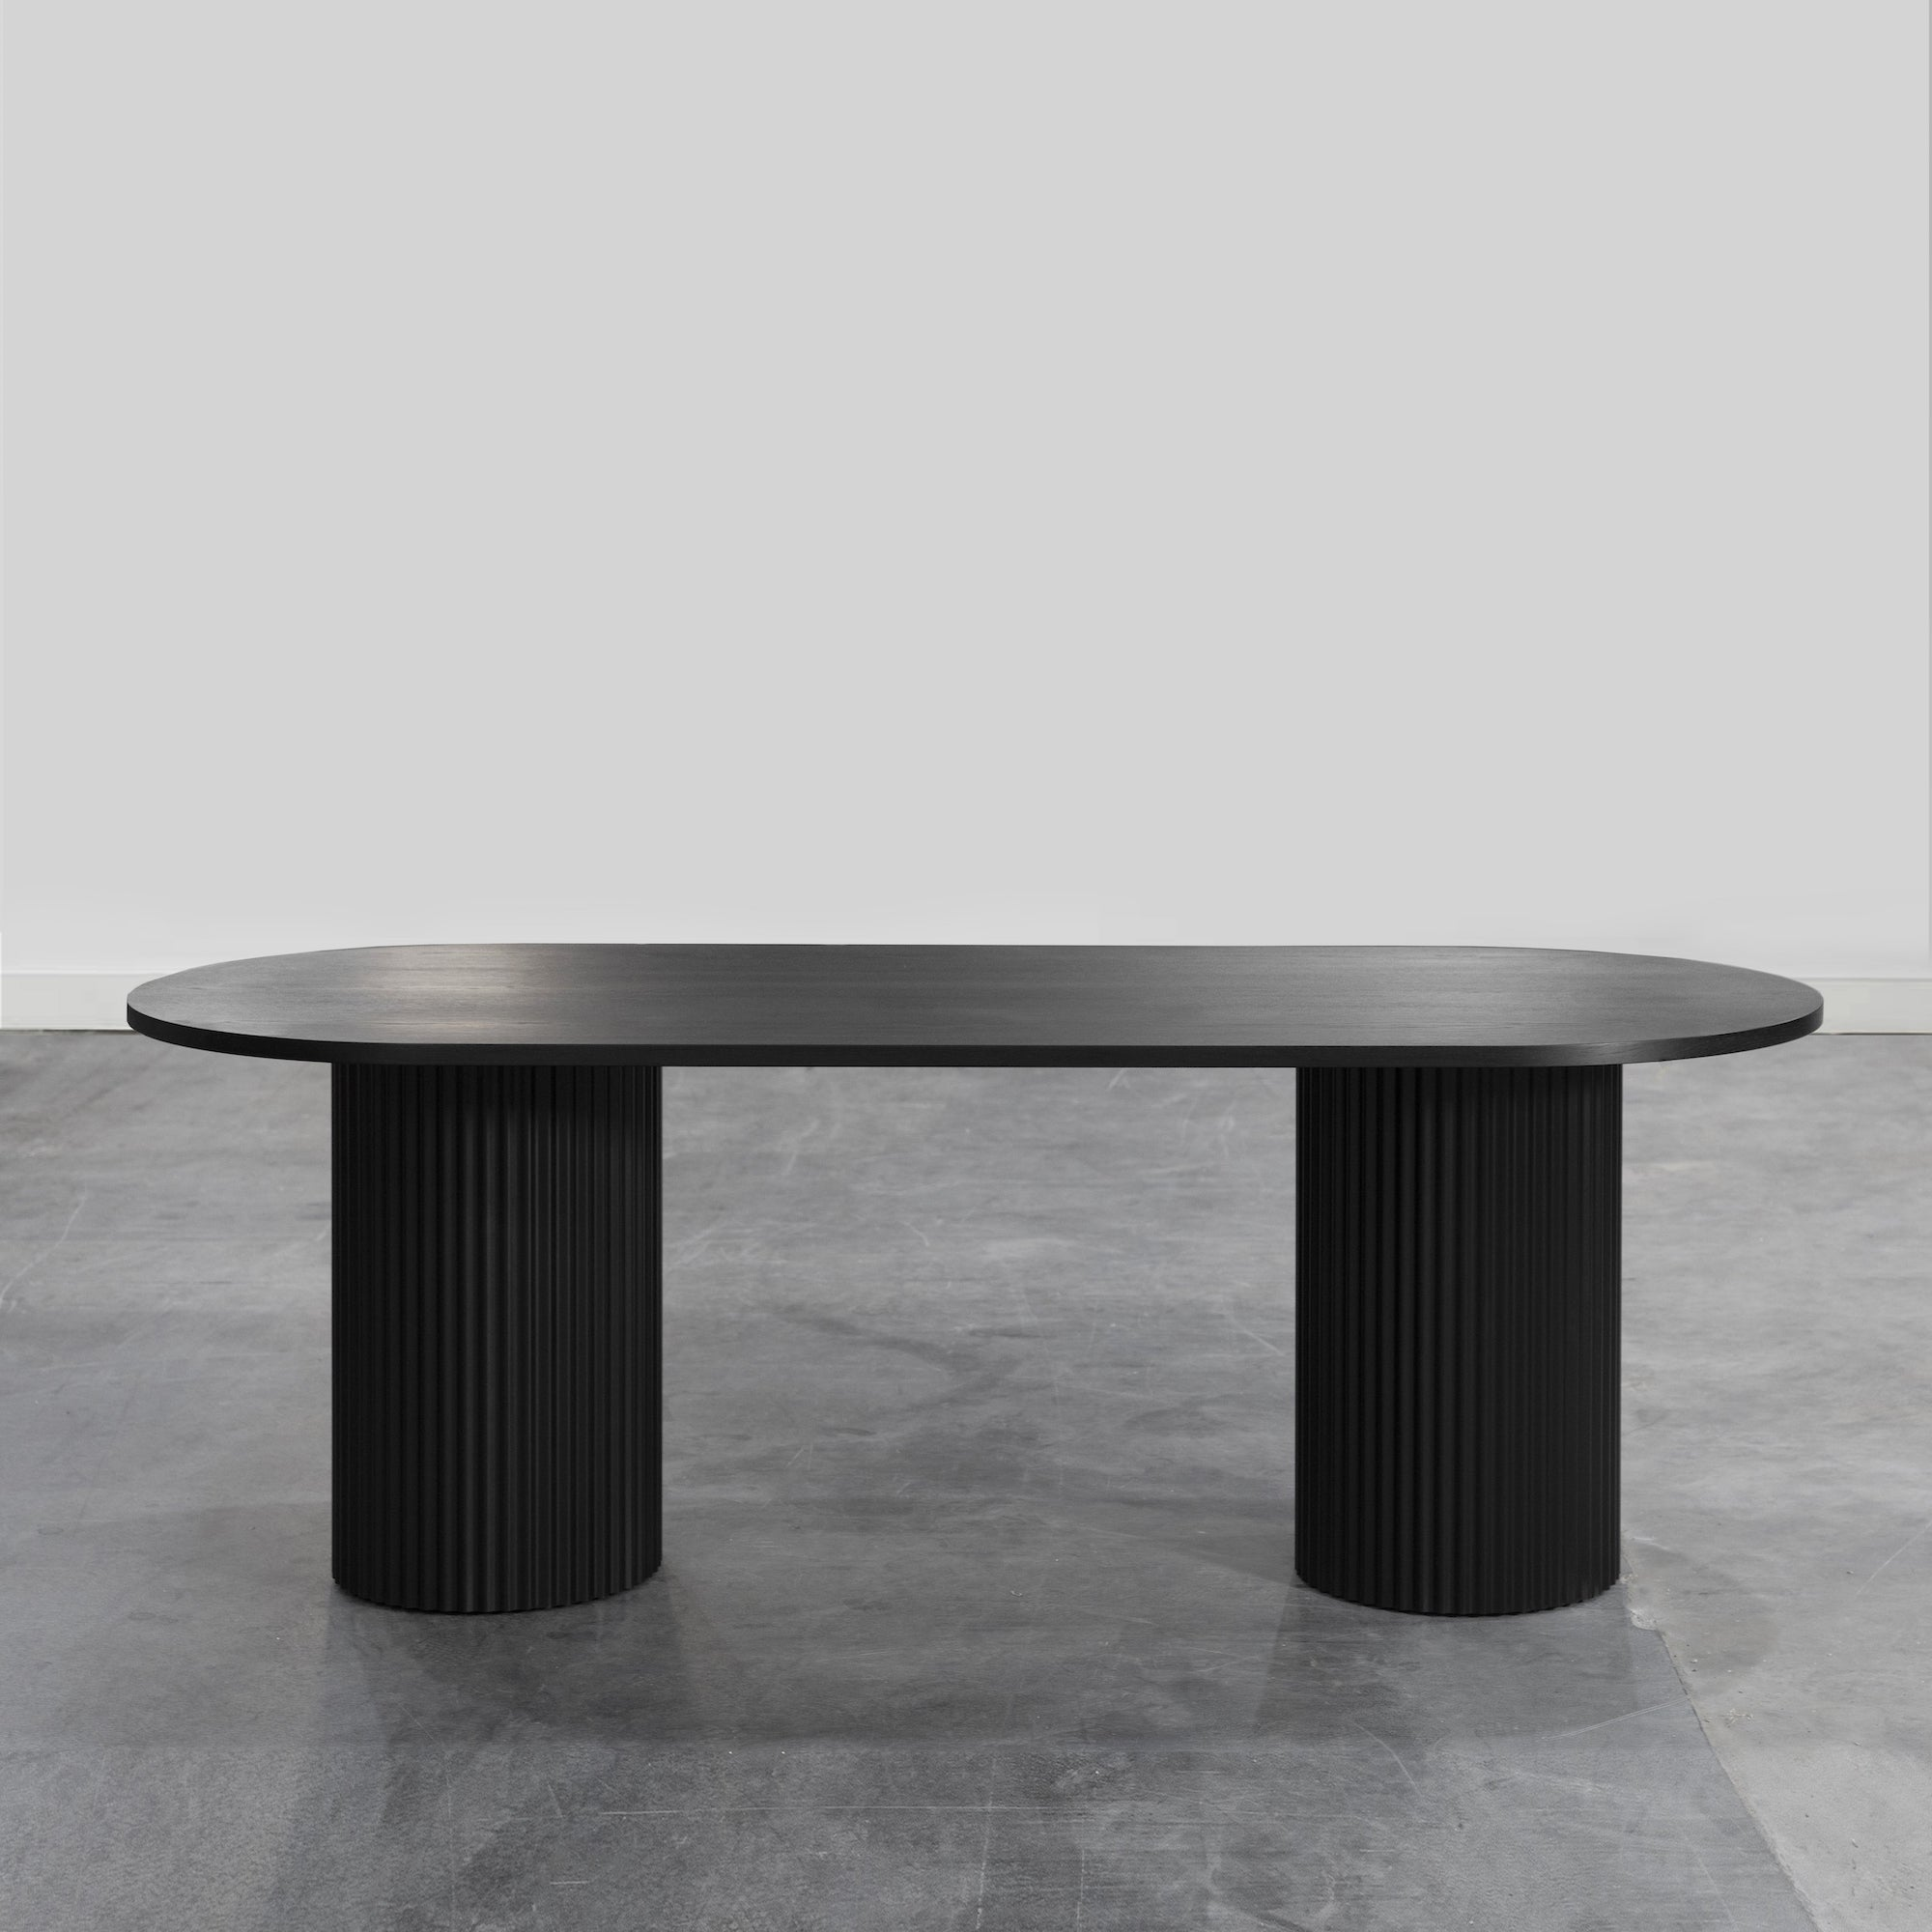 Ridge Table wins Good Design Award